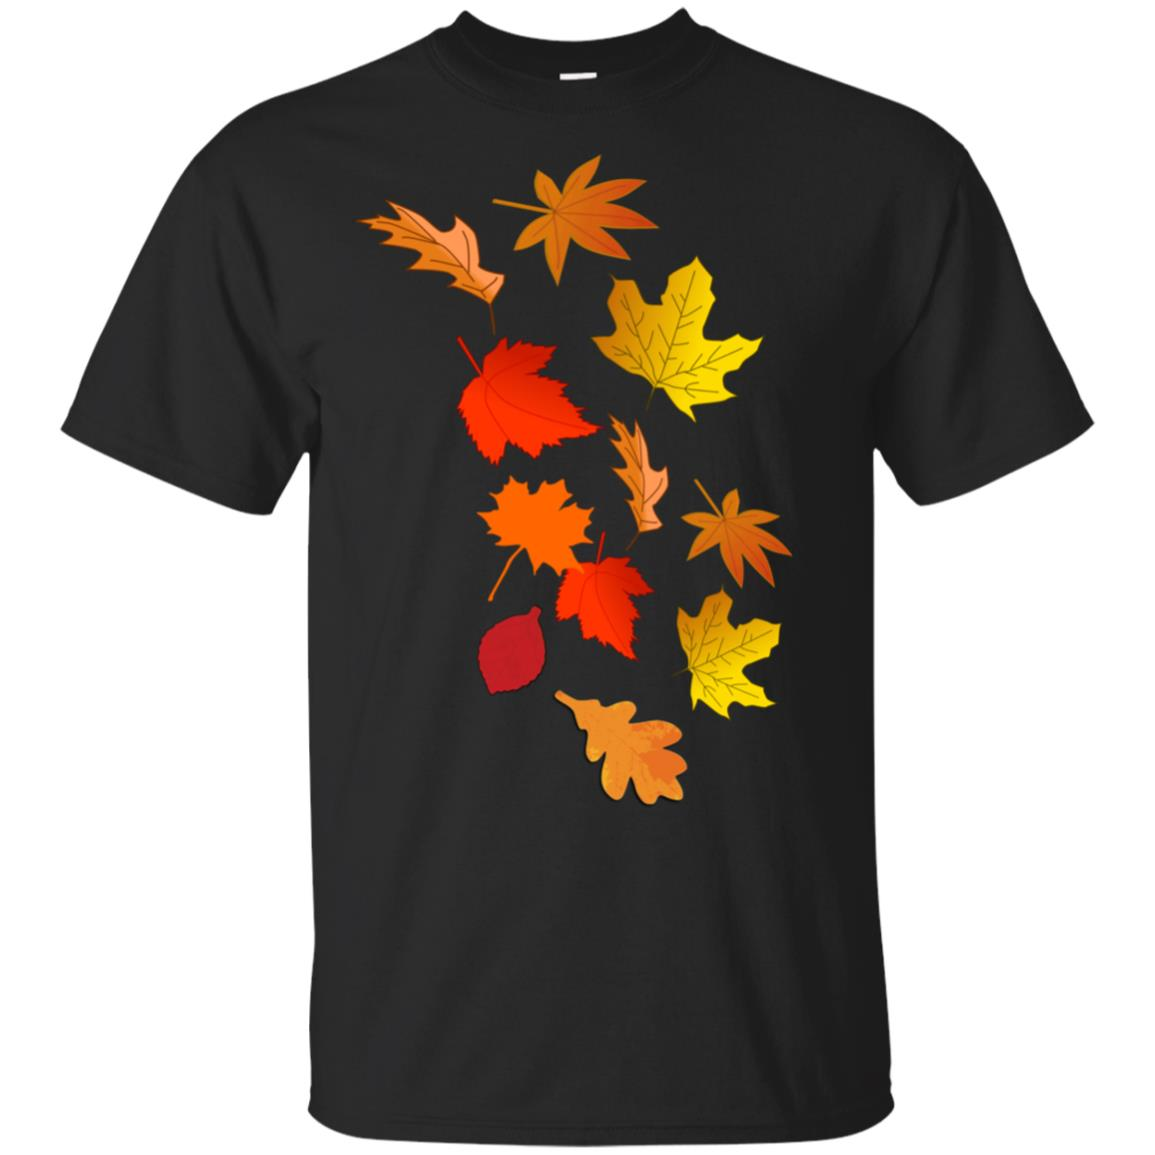 Autumn Foliage More Falling Leaves Unisex Short Sleeve